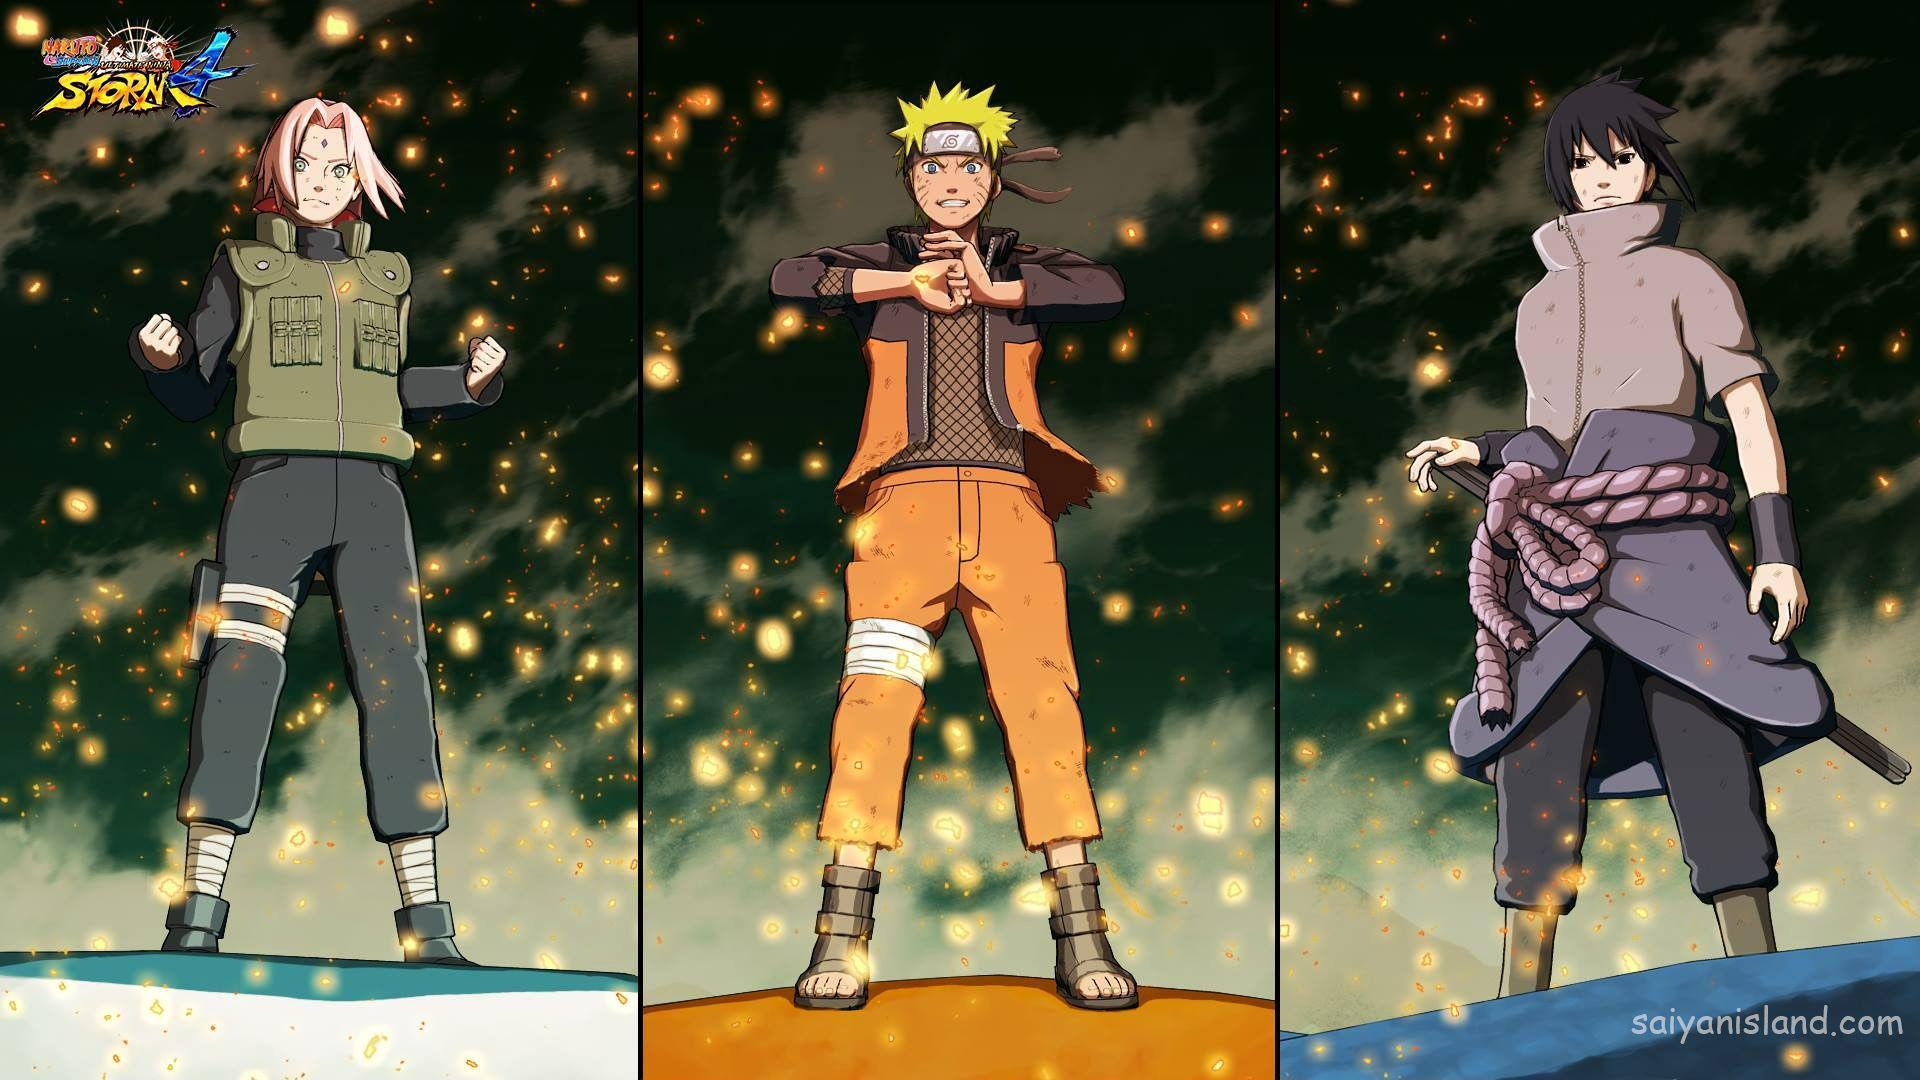 Naruto Wallpapers Team 7 Wallpaper Android : Anime Wallpaper ...